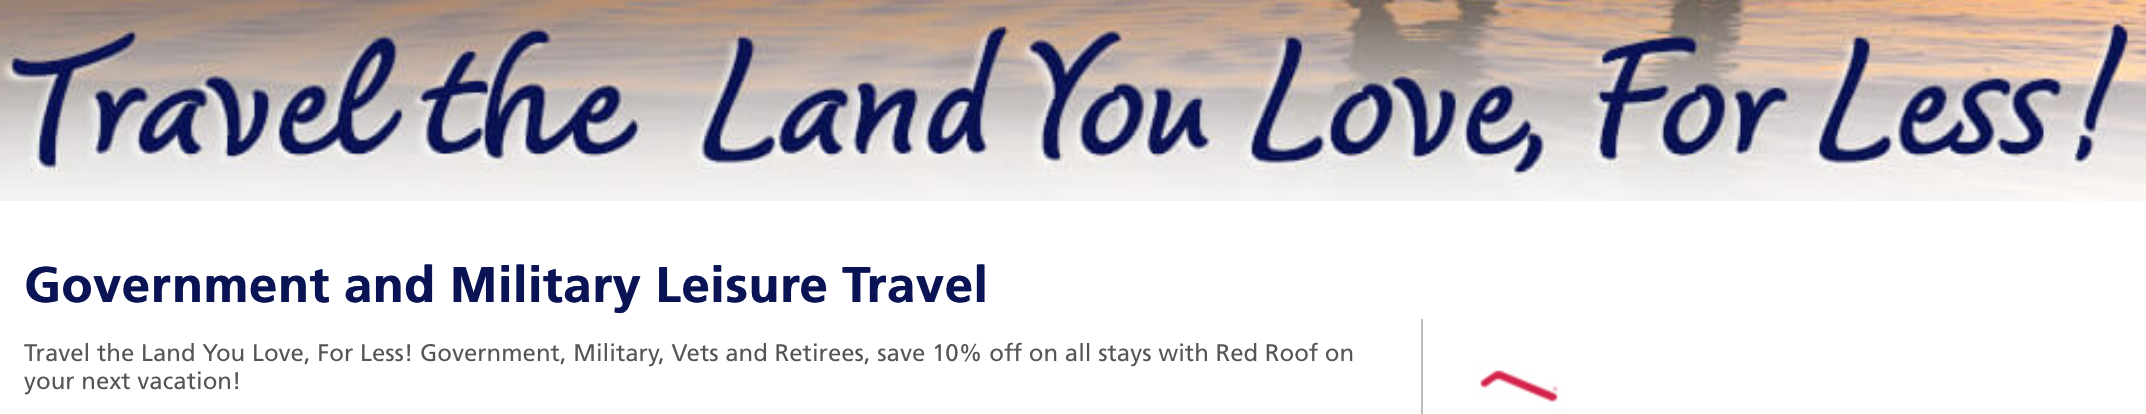 Red Roof Inn Military Veteran Discounts